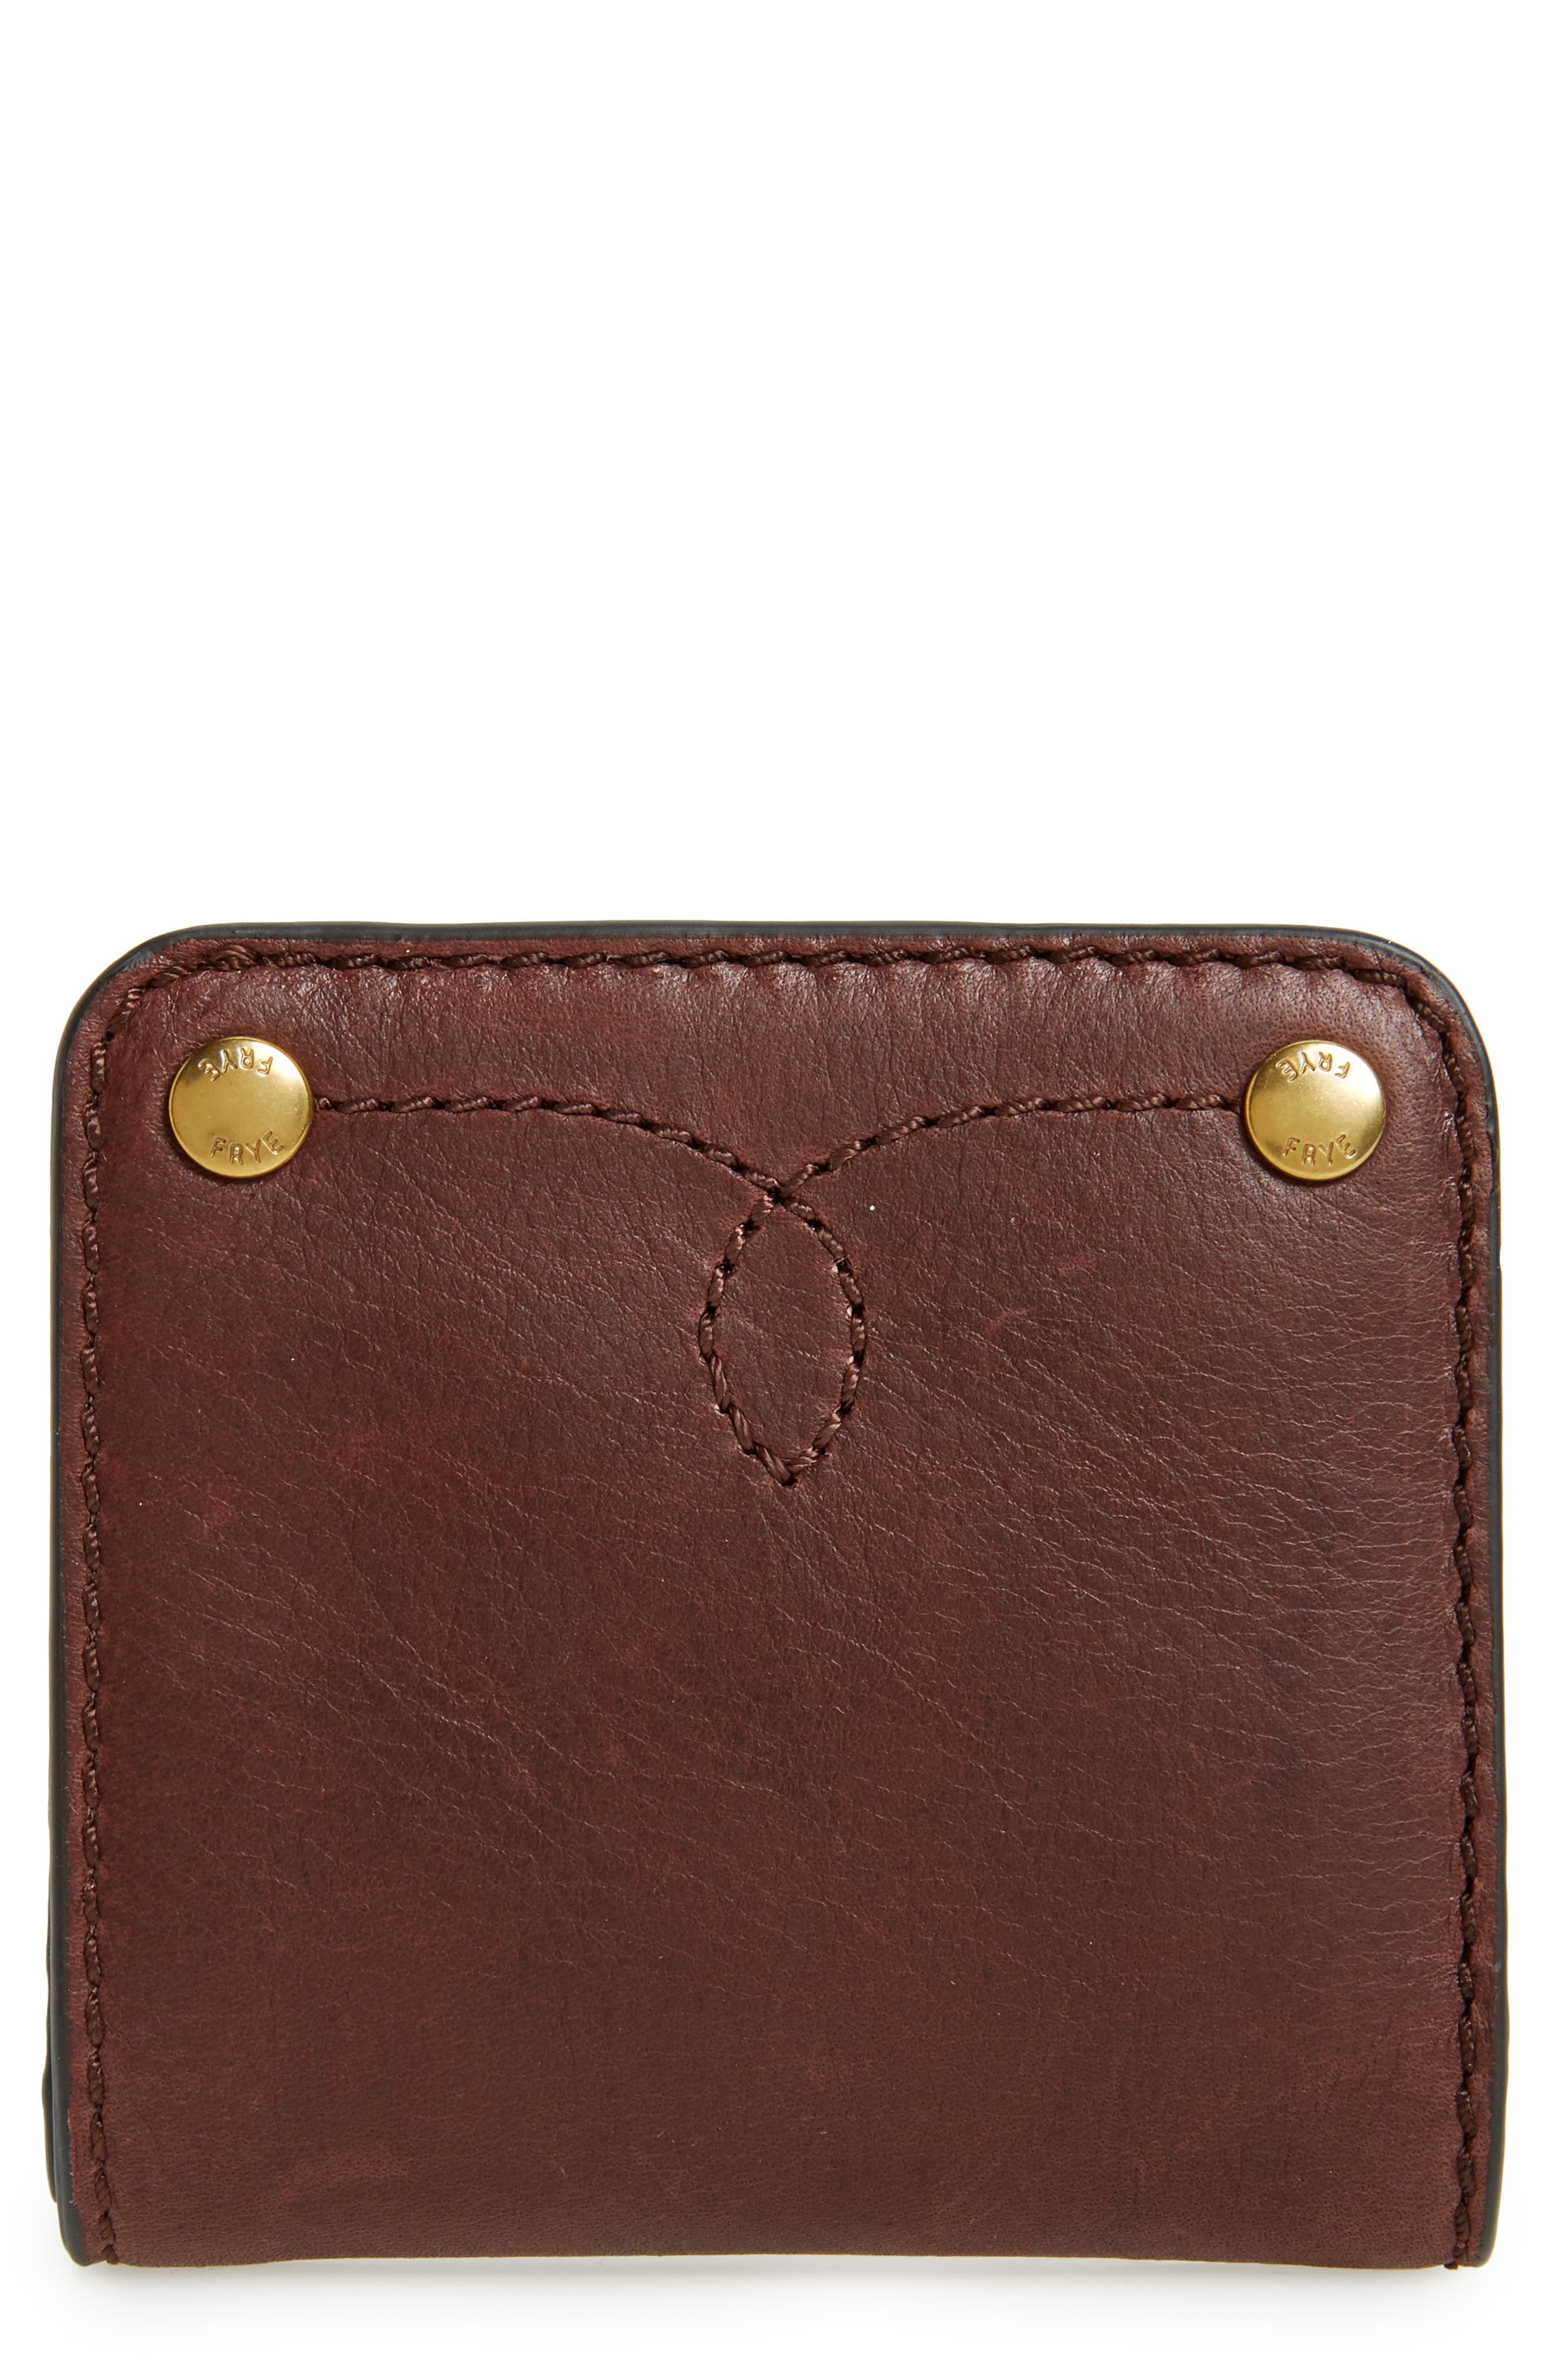 Small Campus Rivet Leather Wallet,                             Main thumbnail 1, color,                             210